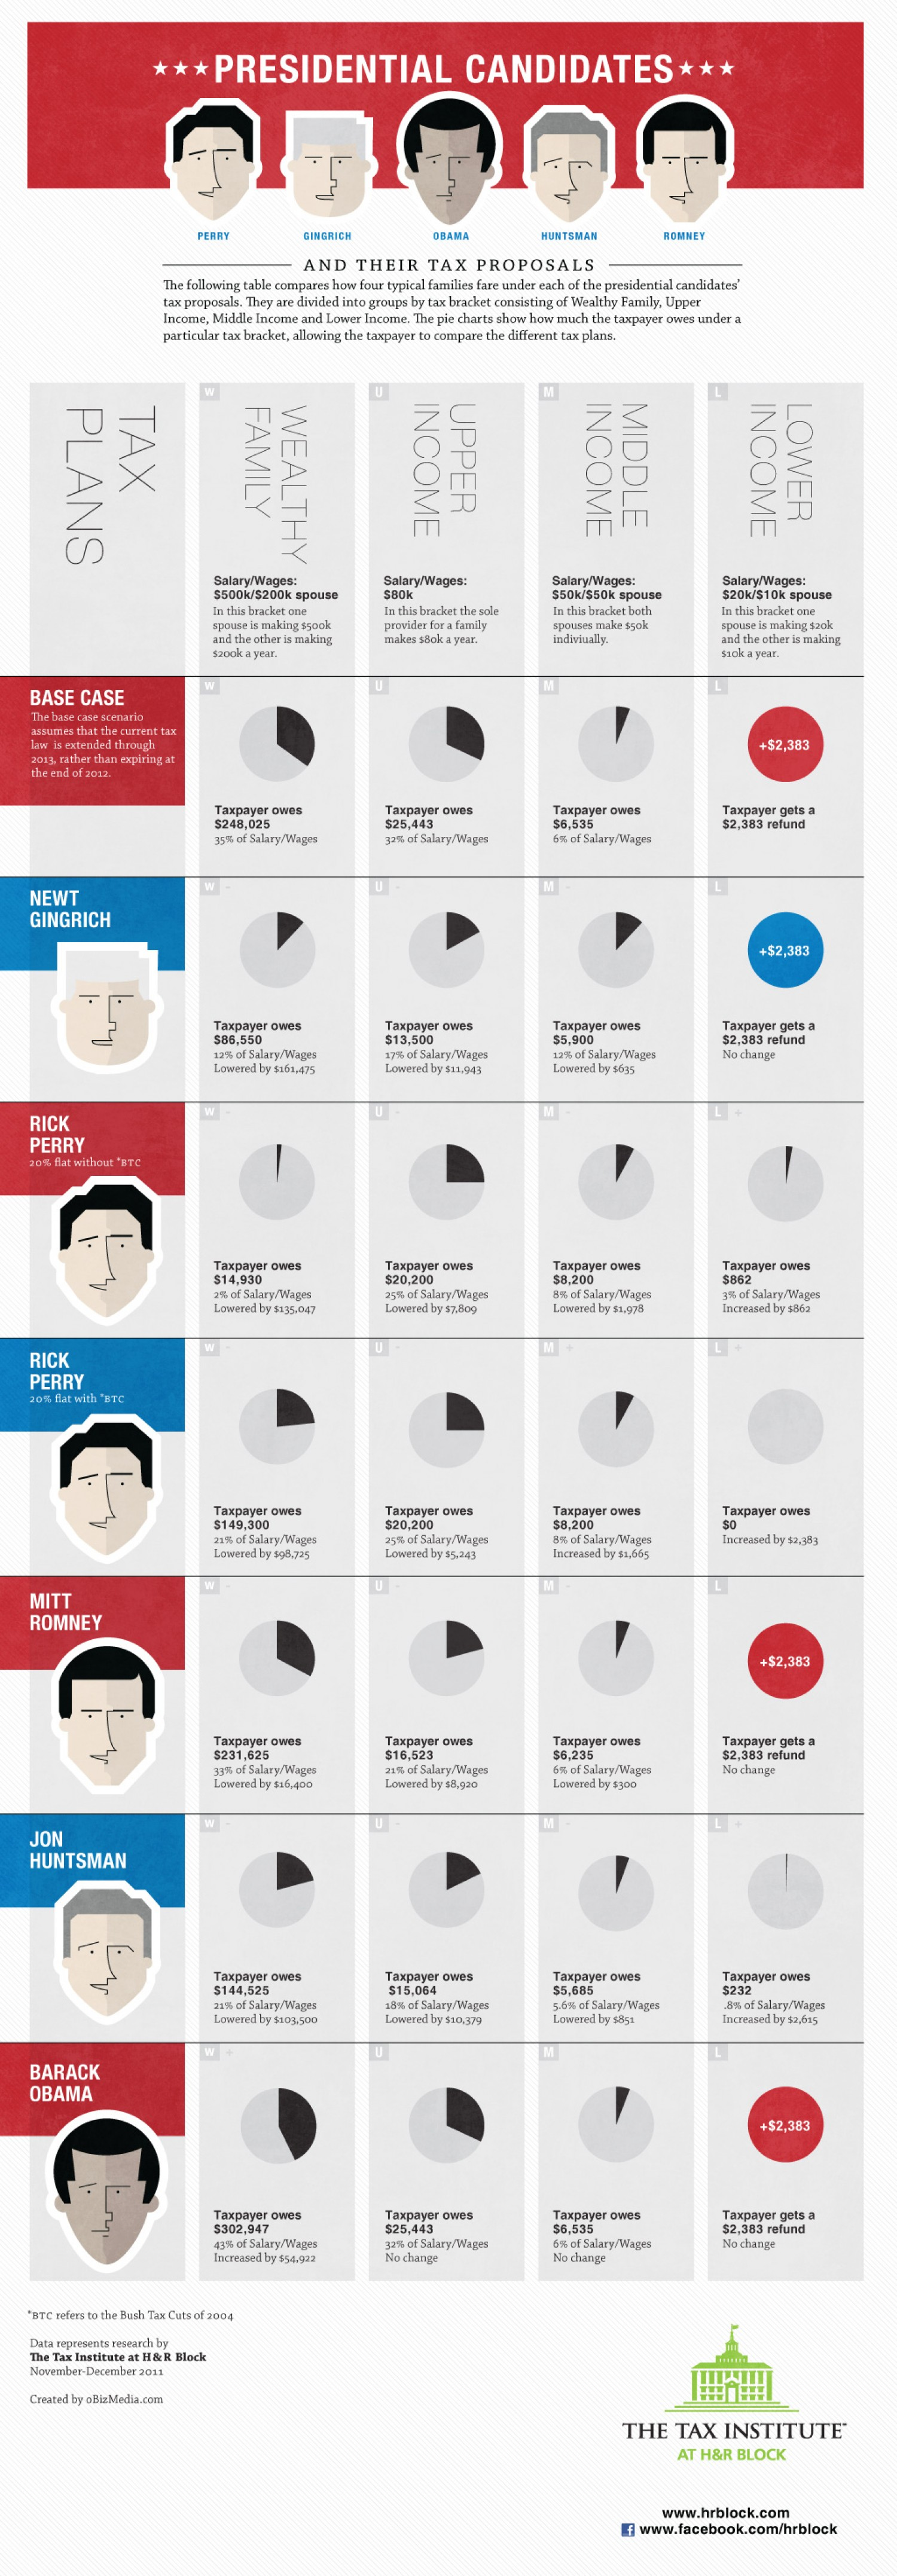 Presidential Candidates and Their Tax Proposals